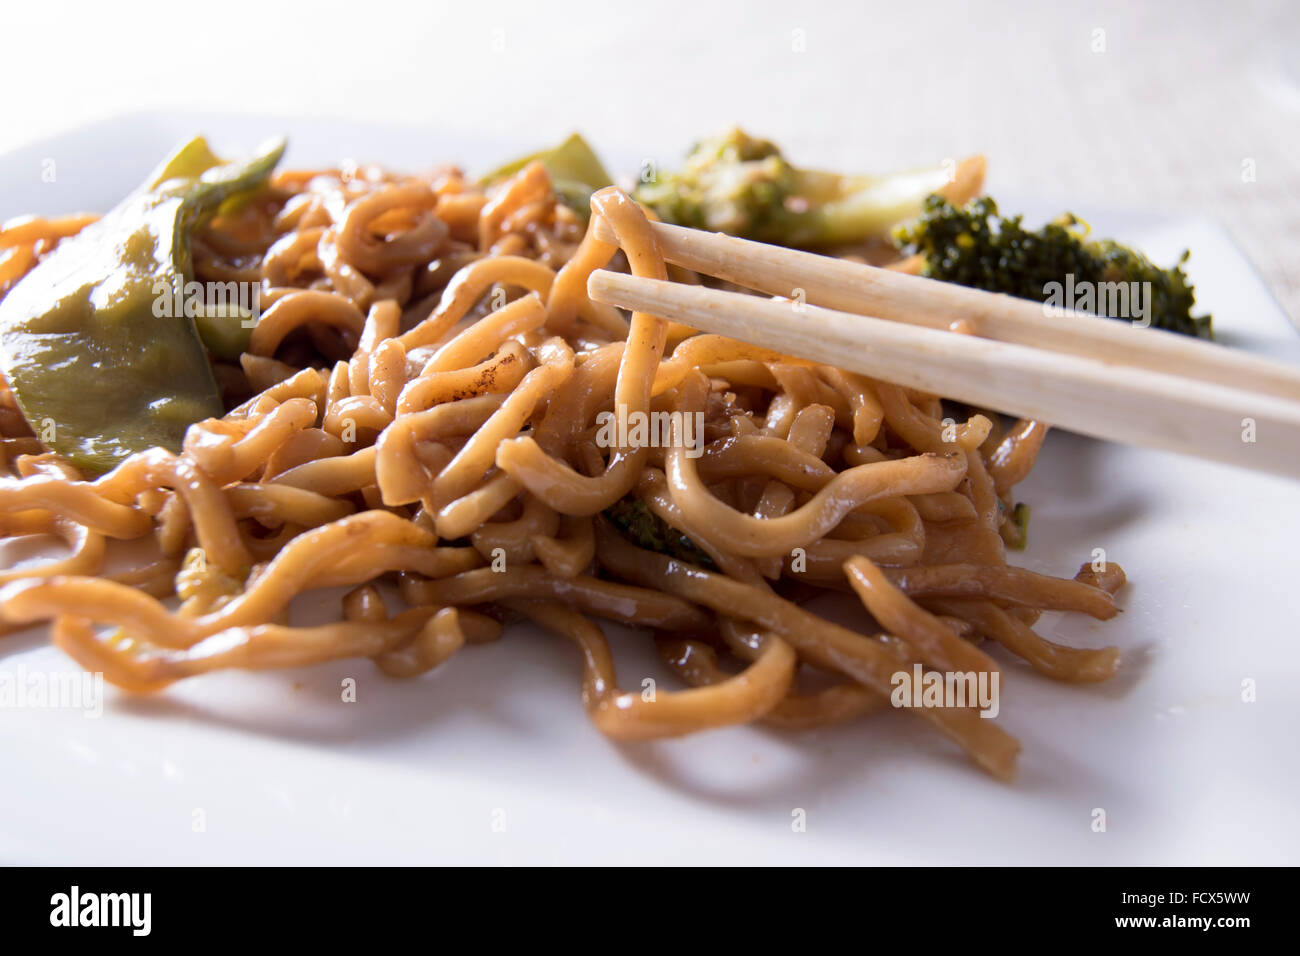 Chinese noodles vegetables and chopsticks - Stock Image